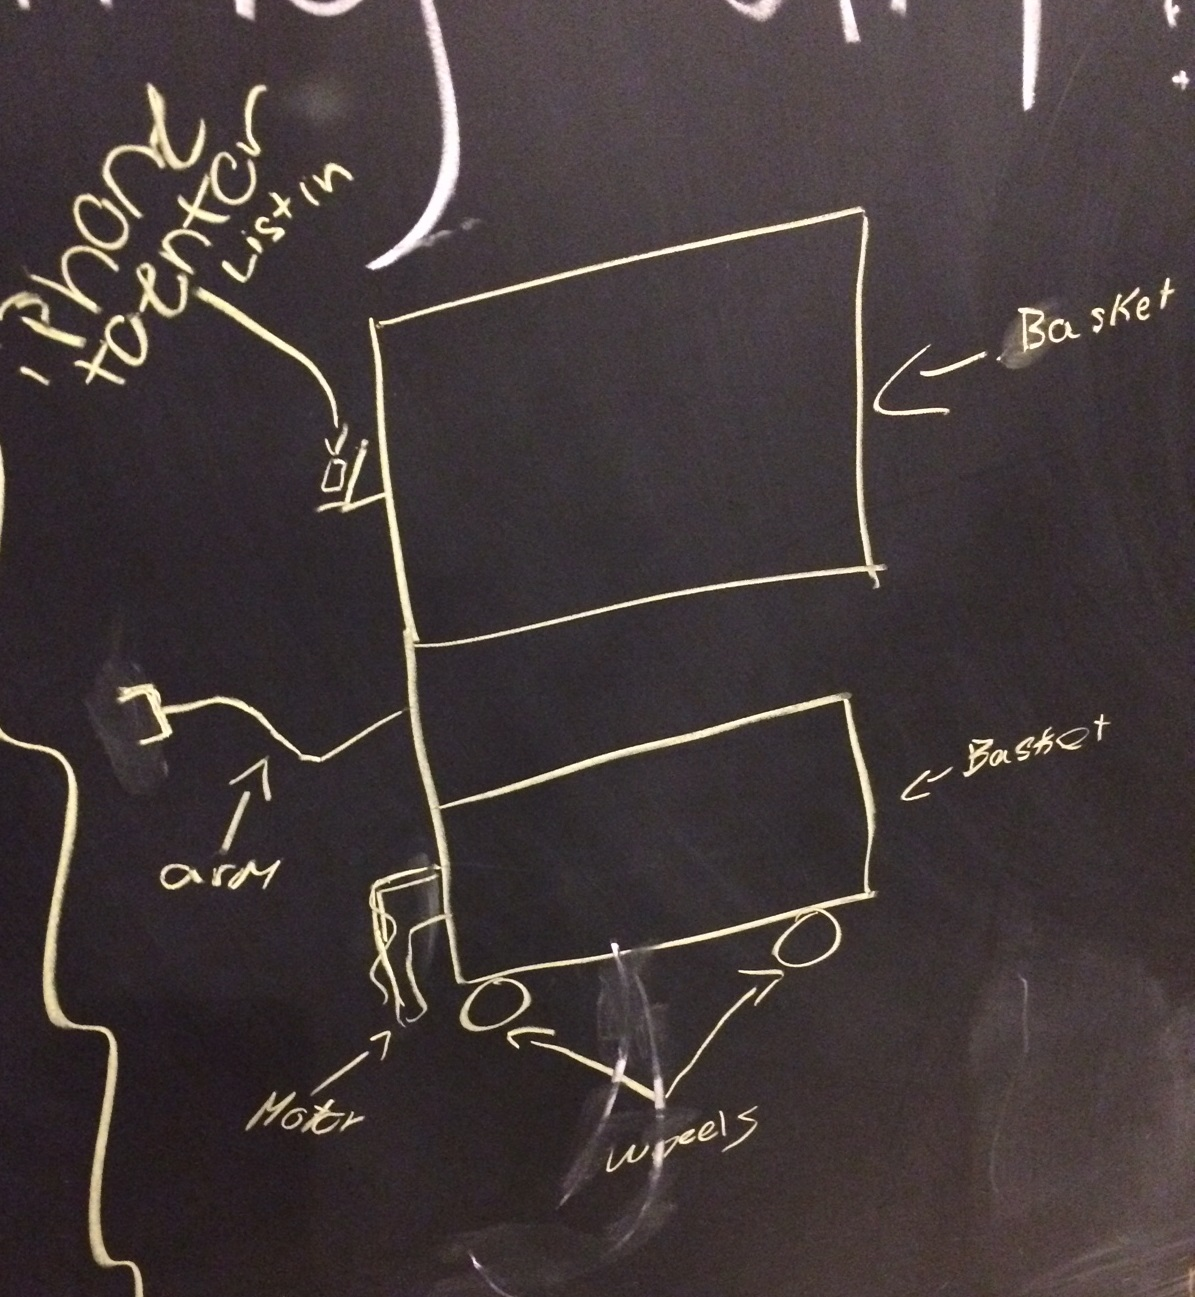 A visitor sketch of a shopping cart with an iPhone charger